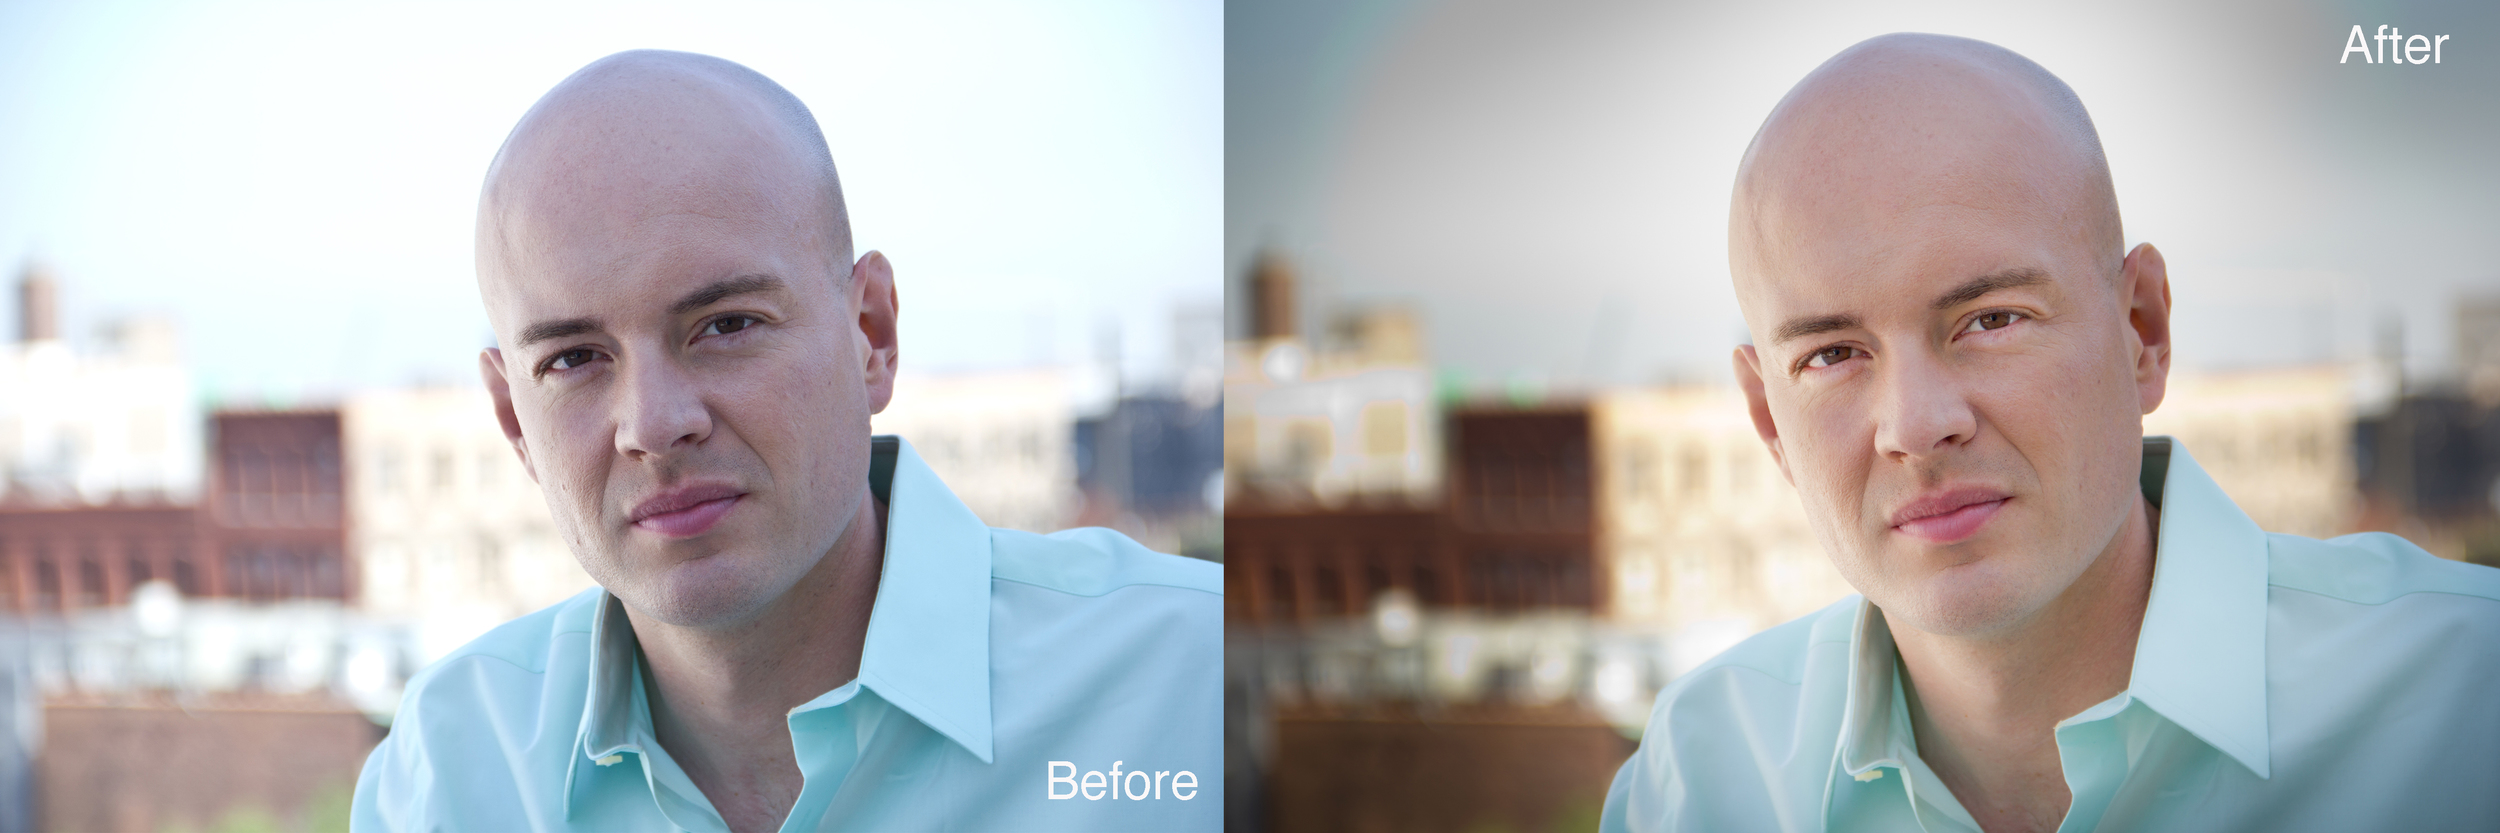 Image on the Left: Very blue, creating unnatural skin tones. Artistically, playing with white balance can be a style choice, but in the case of head shots, you want to personify someones real skin tones.    Image on the Right: Color corrected. The skin tones are natural and warm. The eyes are brighter and more engaging. Textures are more prominent.